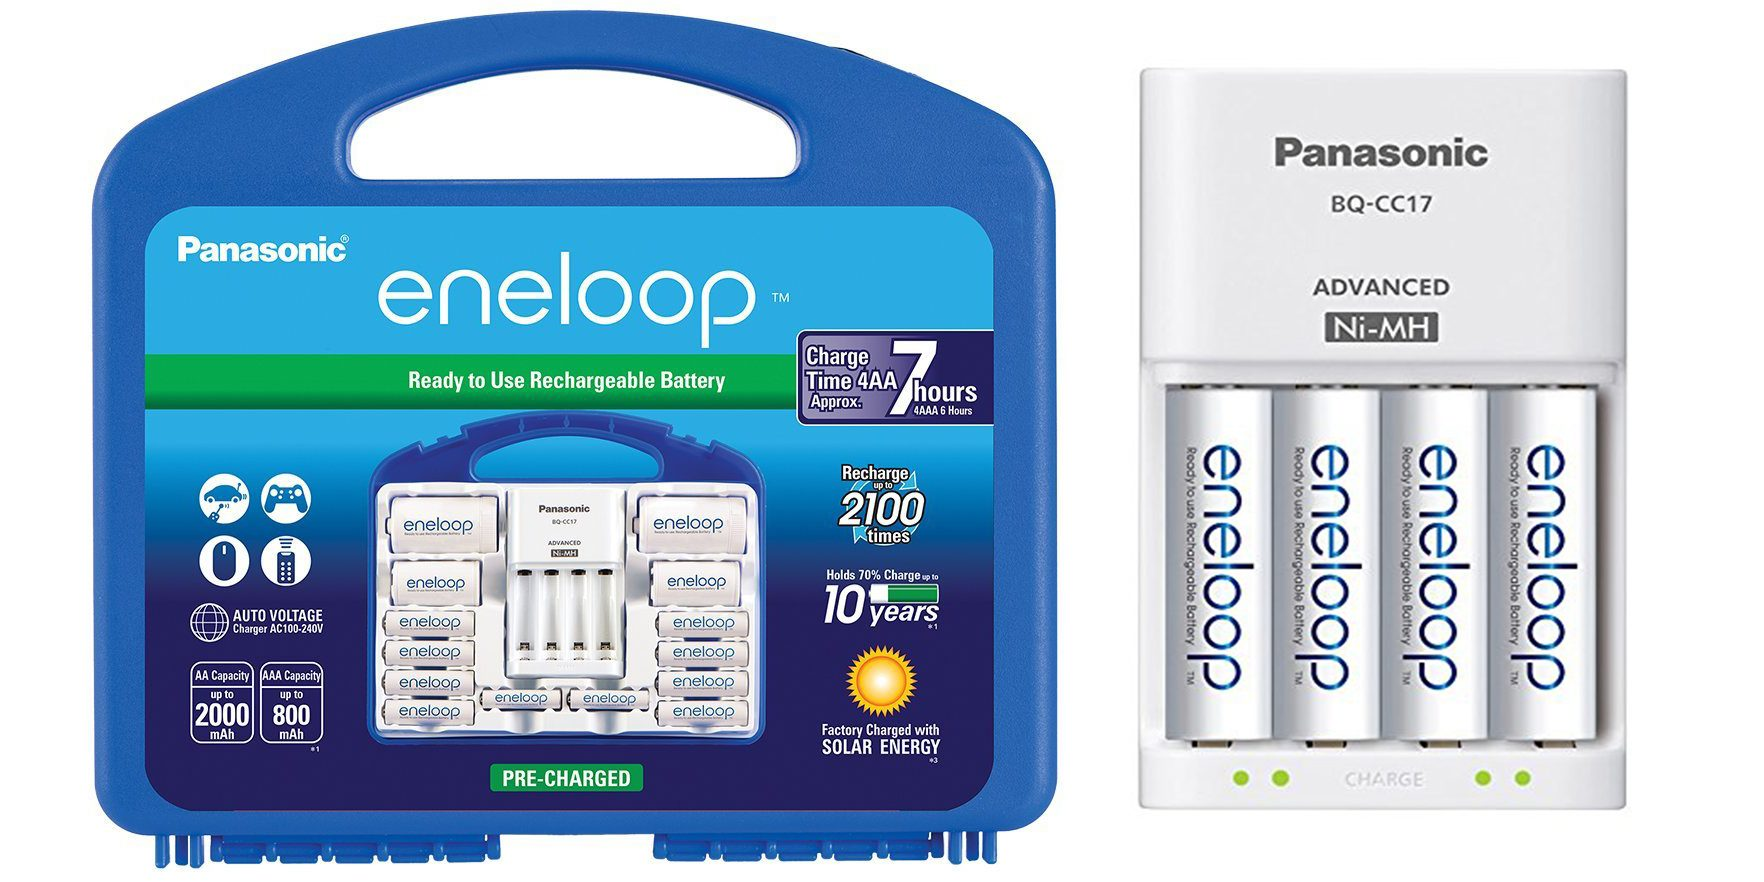 panasonic-eneloop-battery-bundle-1